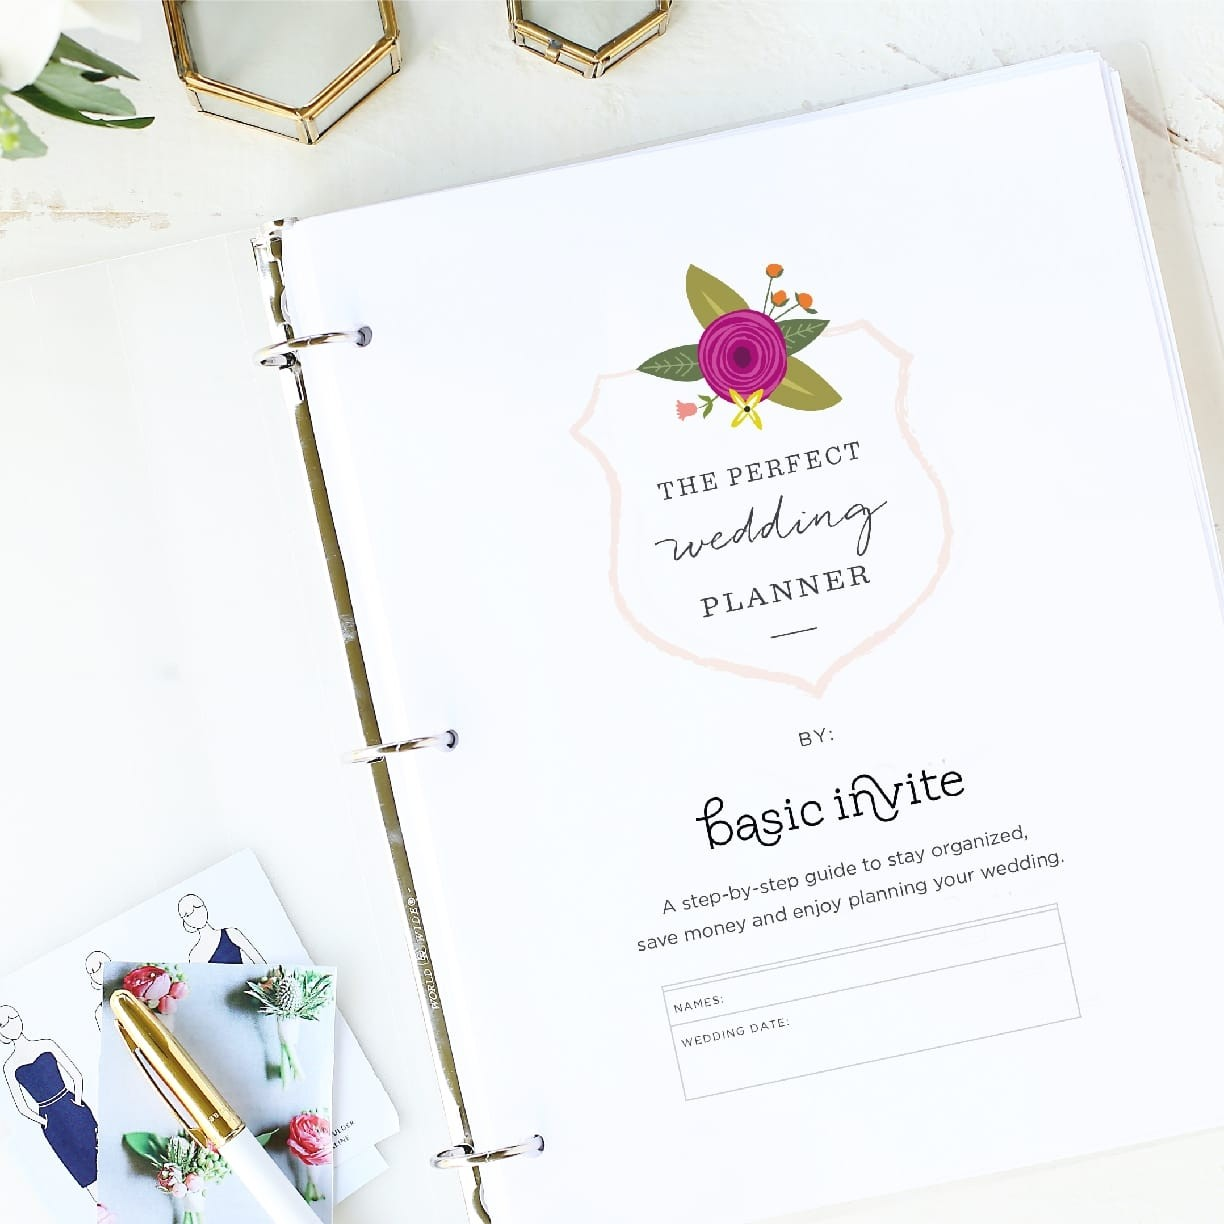 "Size: 8.5"" x 11"" paper or A4 Set up: 75 pages total Colors: some colors usedUse these PDF editable planning sheets as an add-on to our wedding planner. Manage every detail of your wedding on your computer instead of by hand.